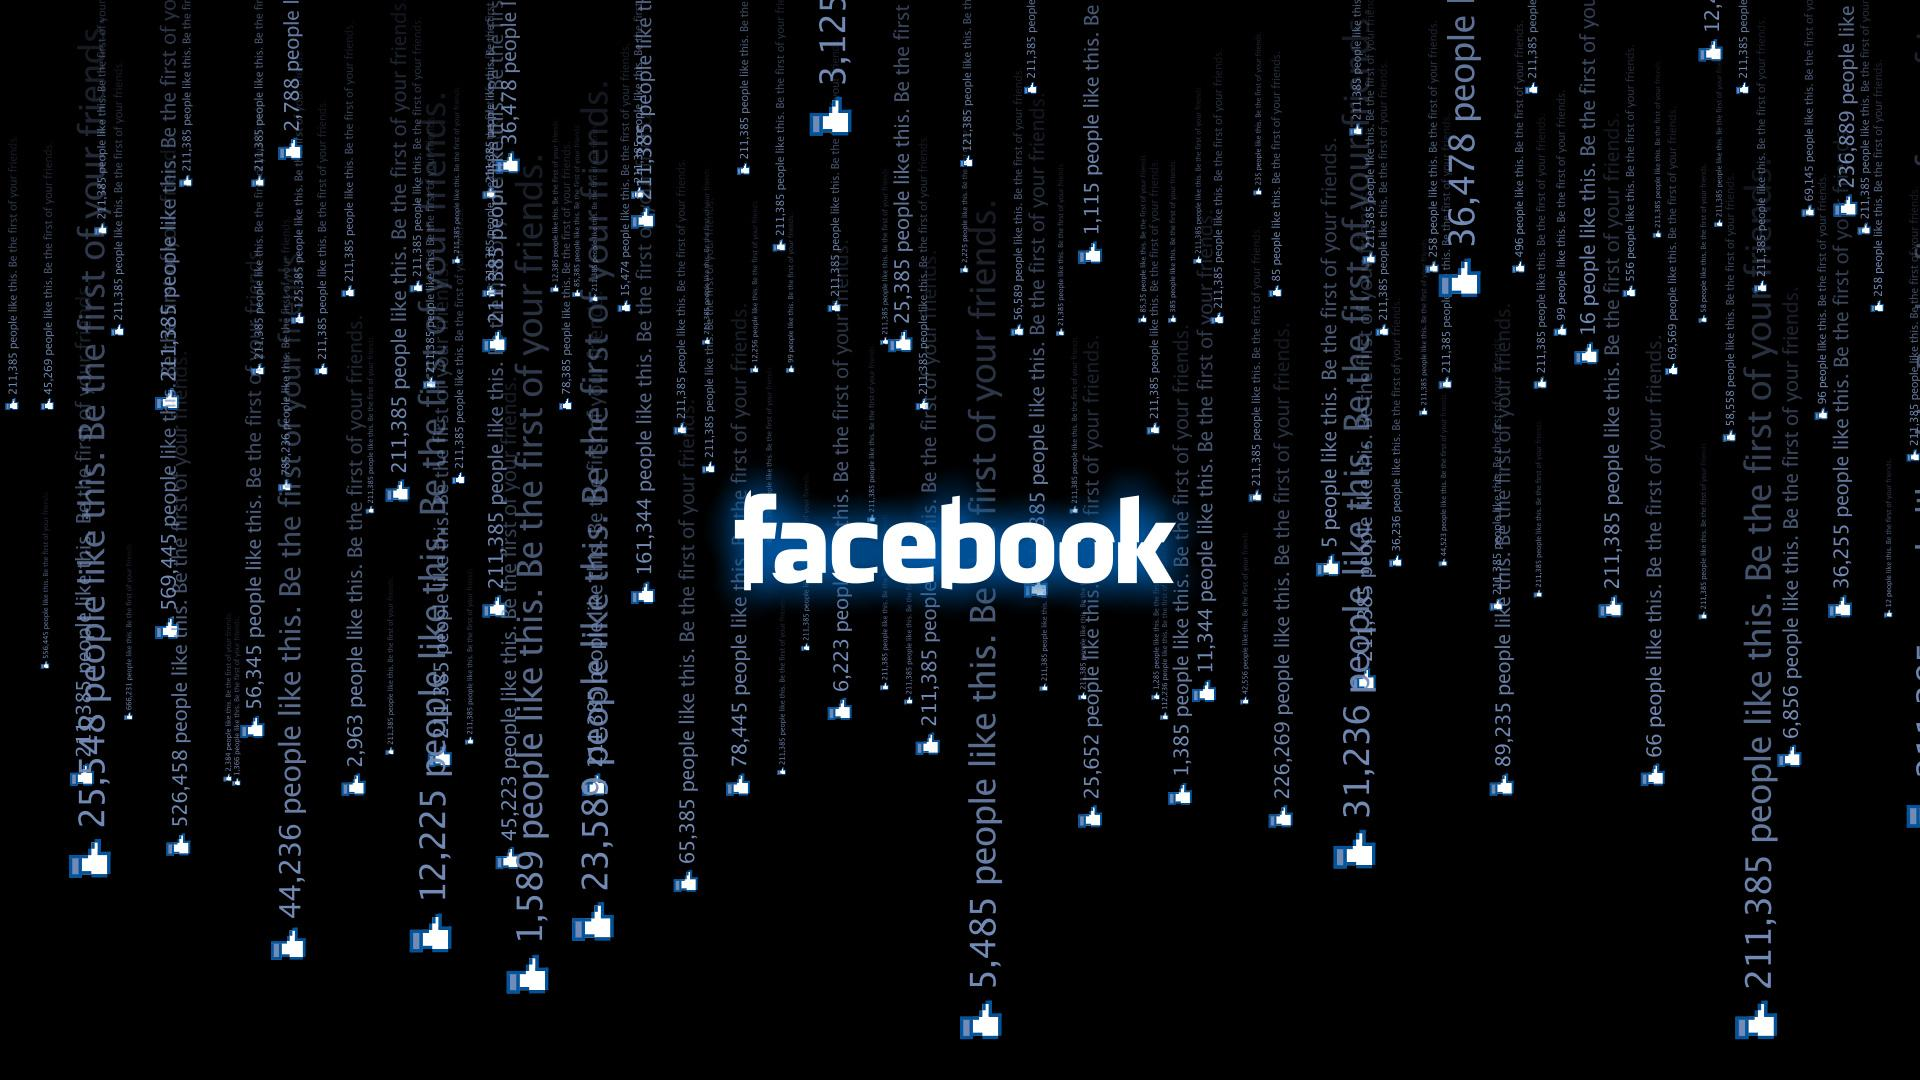 Facebook wallpapers HD quality